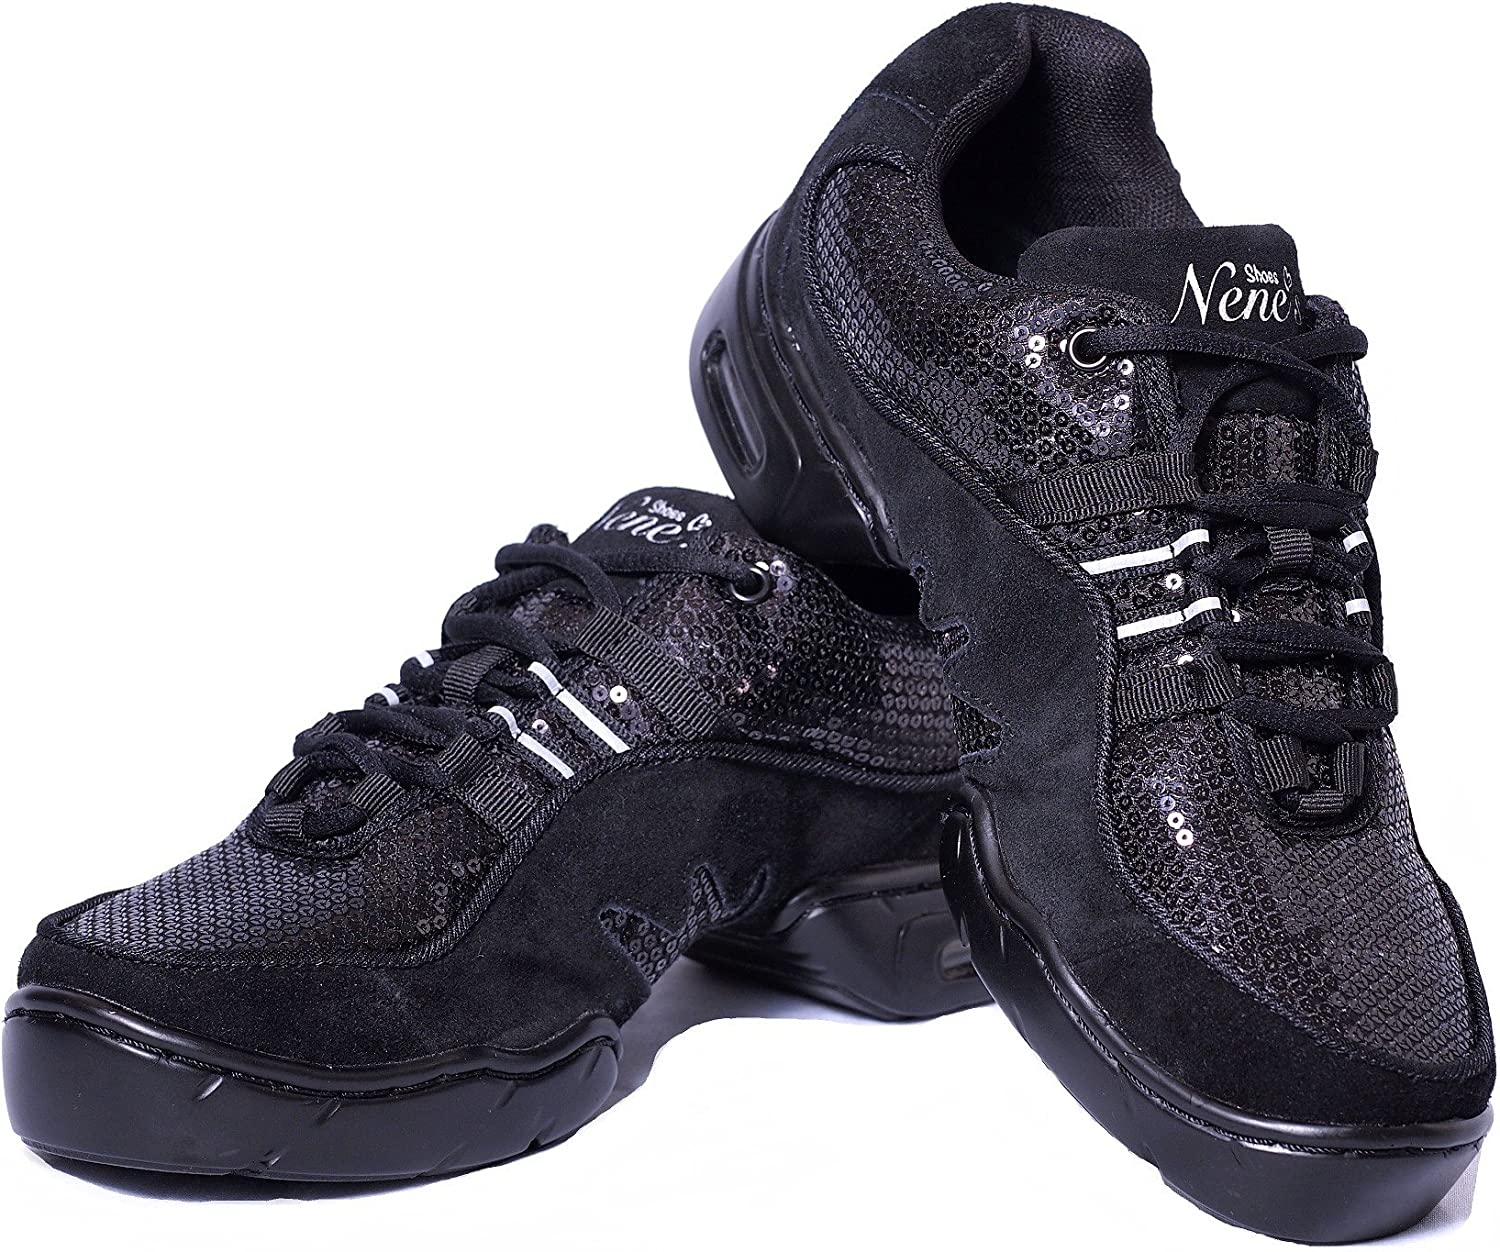 fd461ed2f Nene's Collection Best Dance Fitness shoes Sparkly Sneakers Women's Aerobic  Dance or Group Fitness Activities